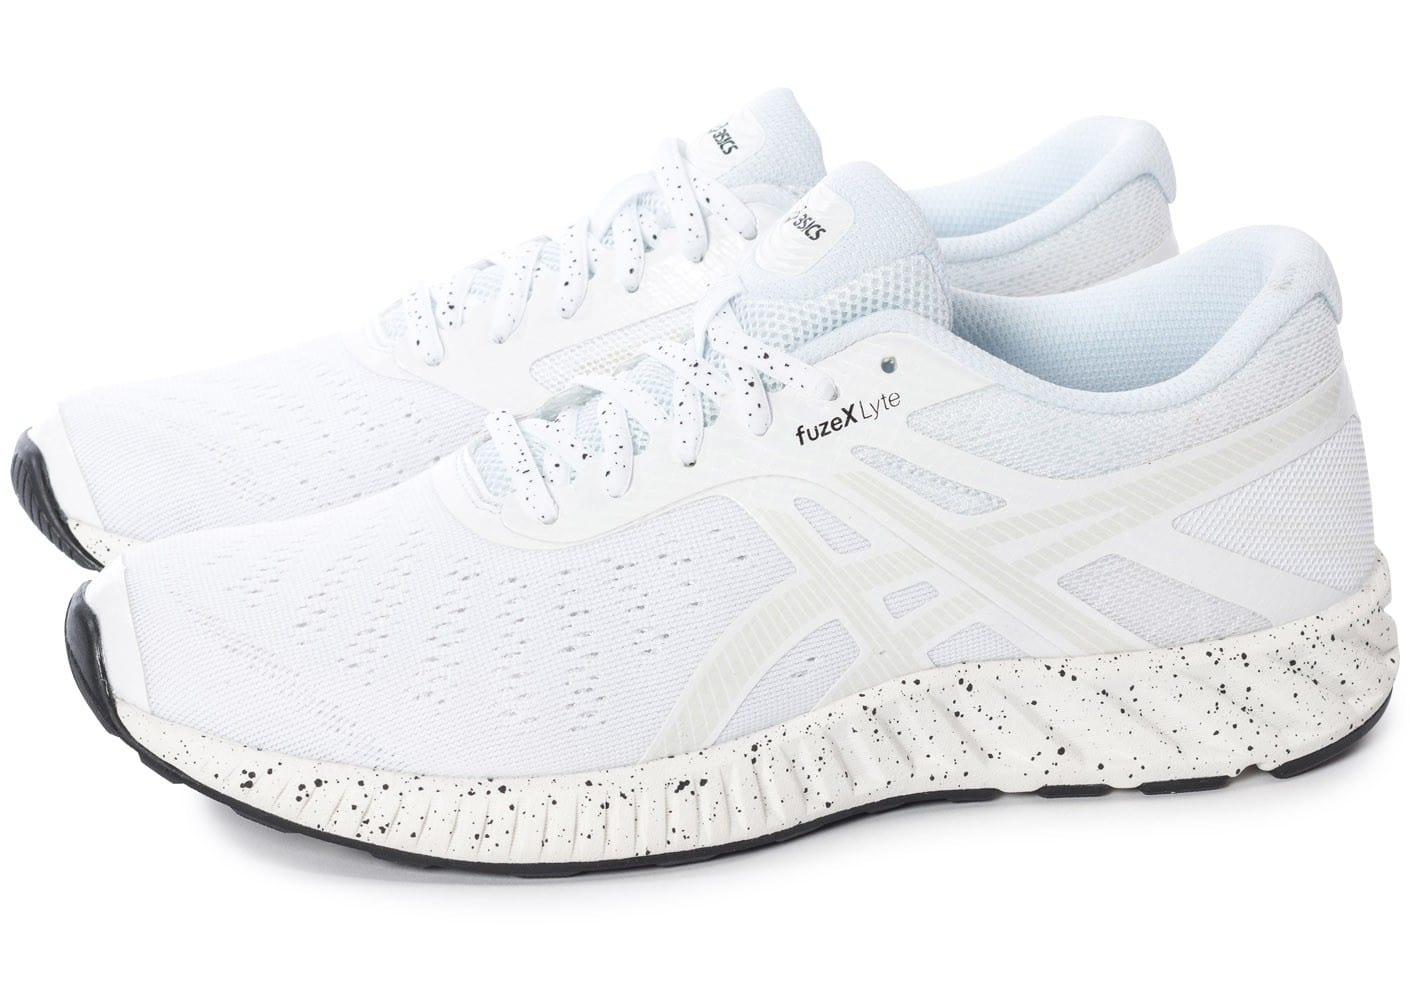 asics fuzex lyte white noise blanche chaussures homme chausport. Black Bedroom Furniture Sets. Home Design Ideas